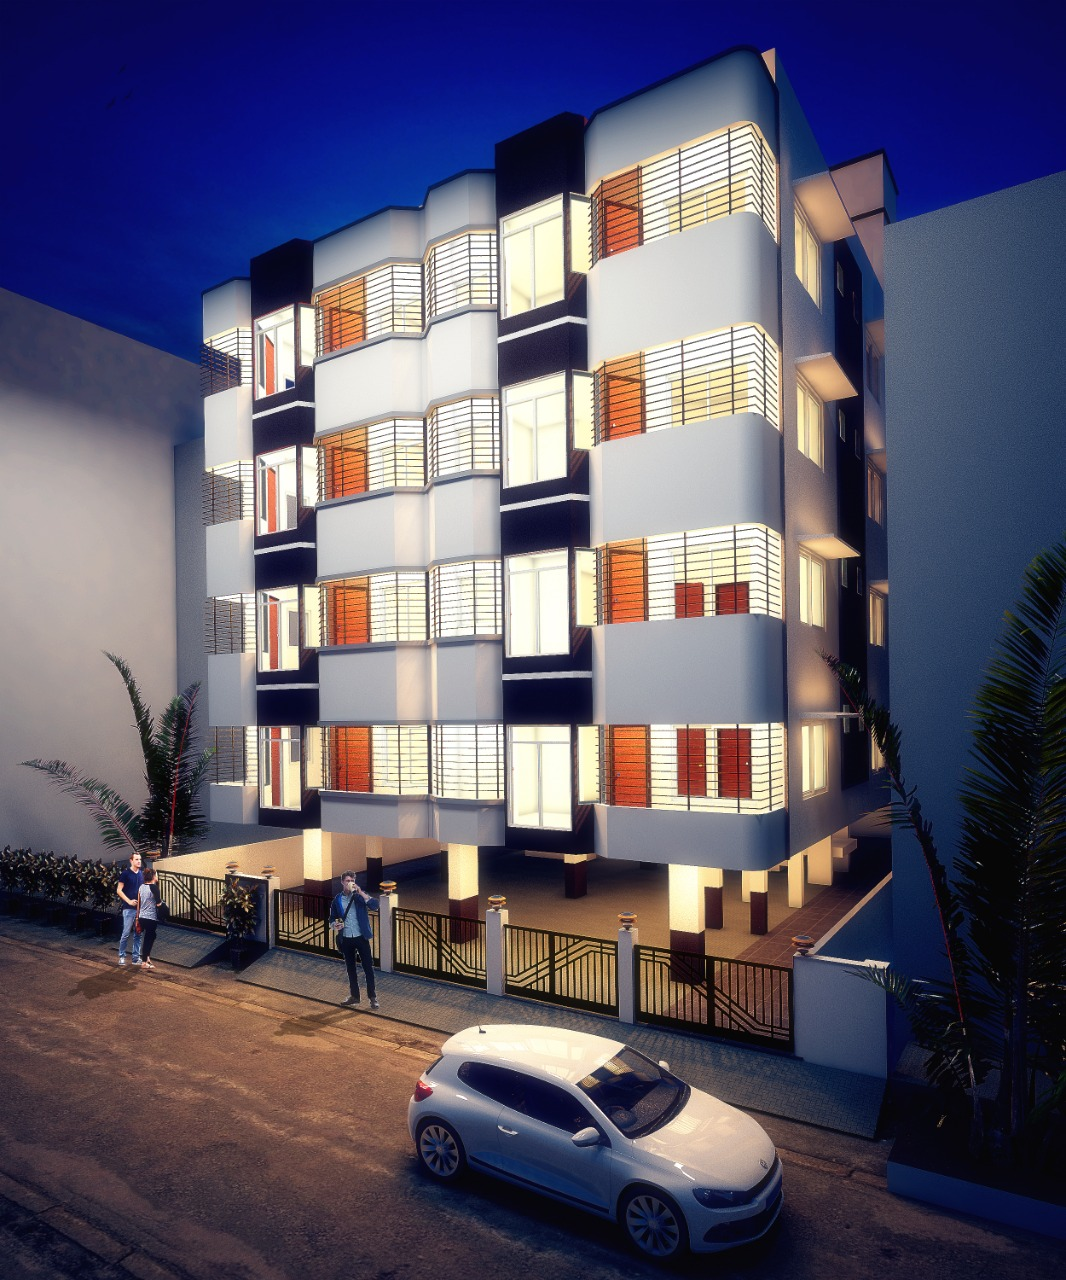 1627369573_banner_APARTMENT_OUTER_VIEW.jpeg